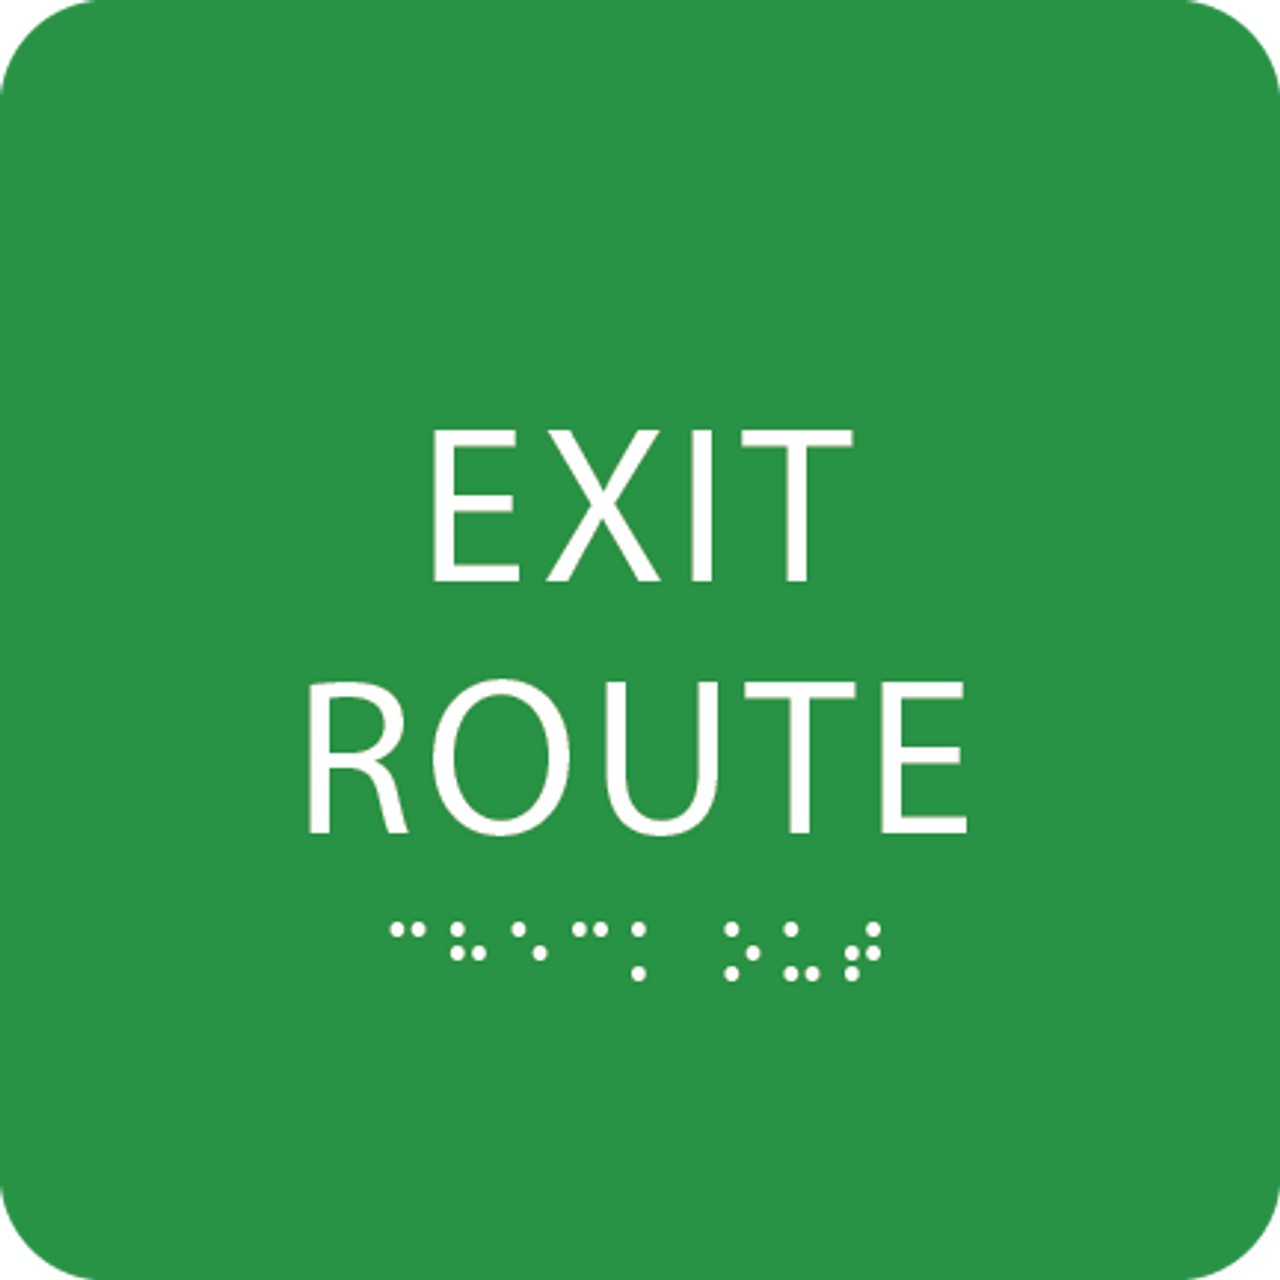 Light Green Tactile Exit Route Sign